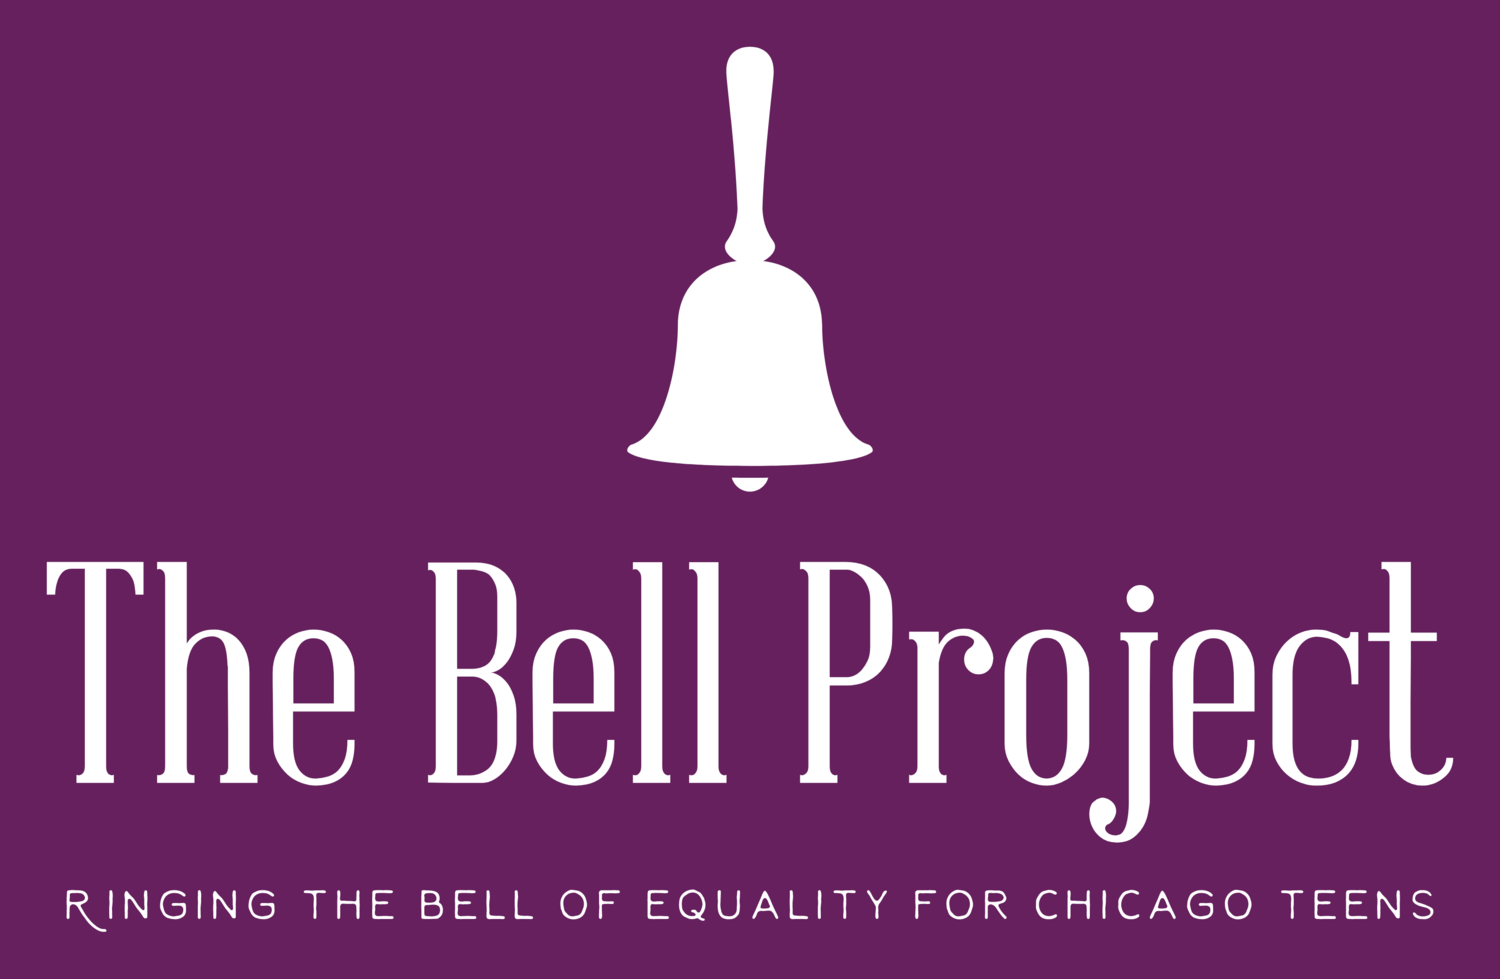 The Bell Project